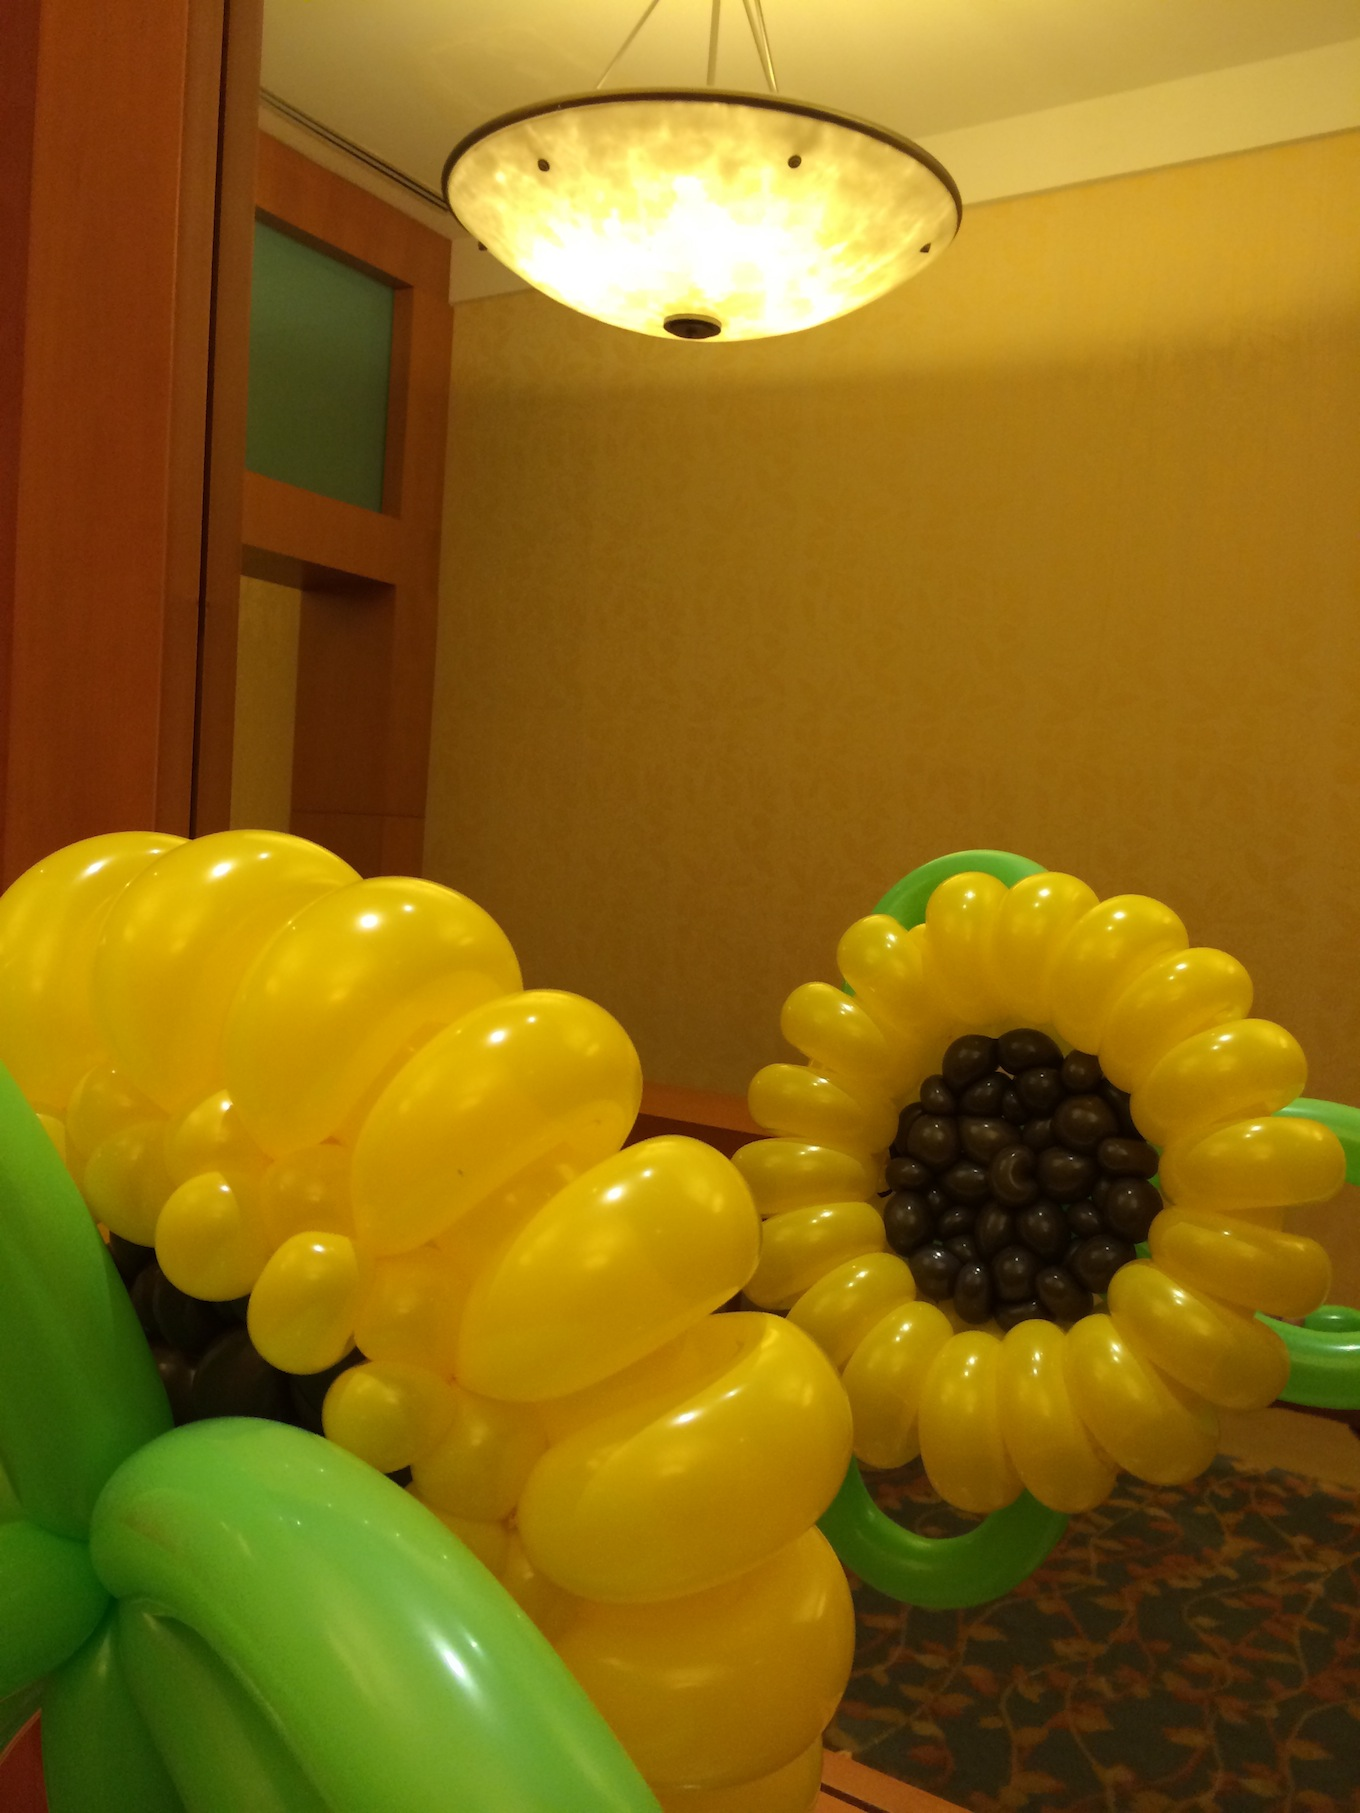 Balloon Sunflower Sculpture Singapore